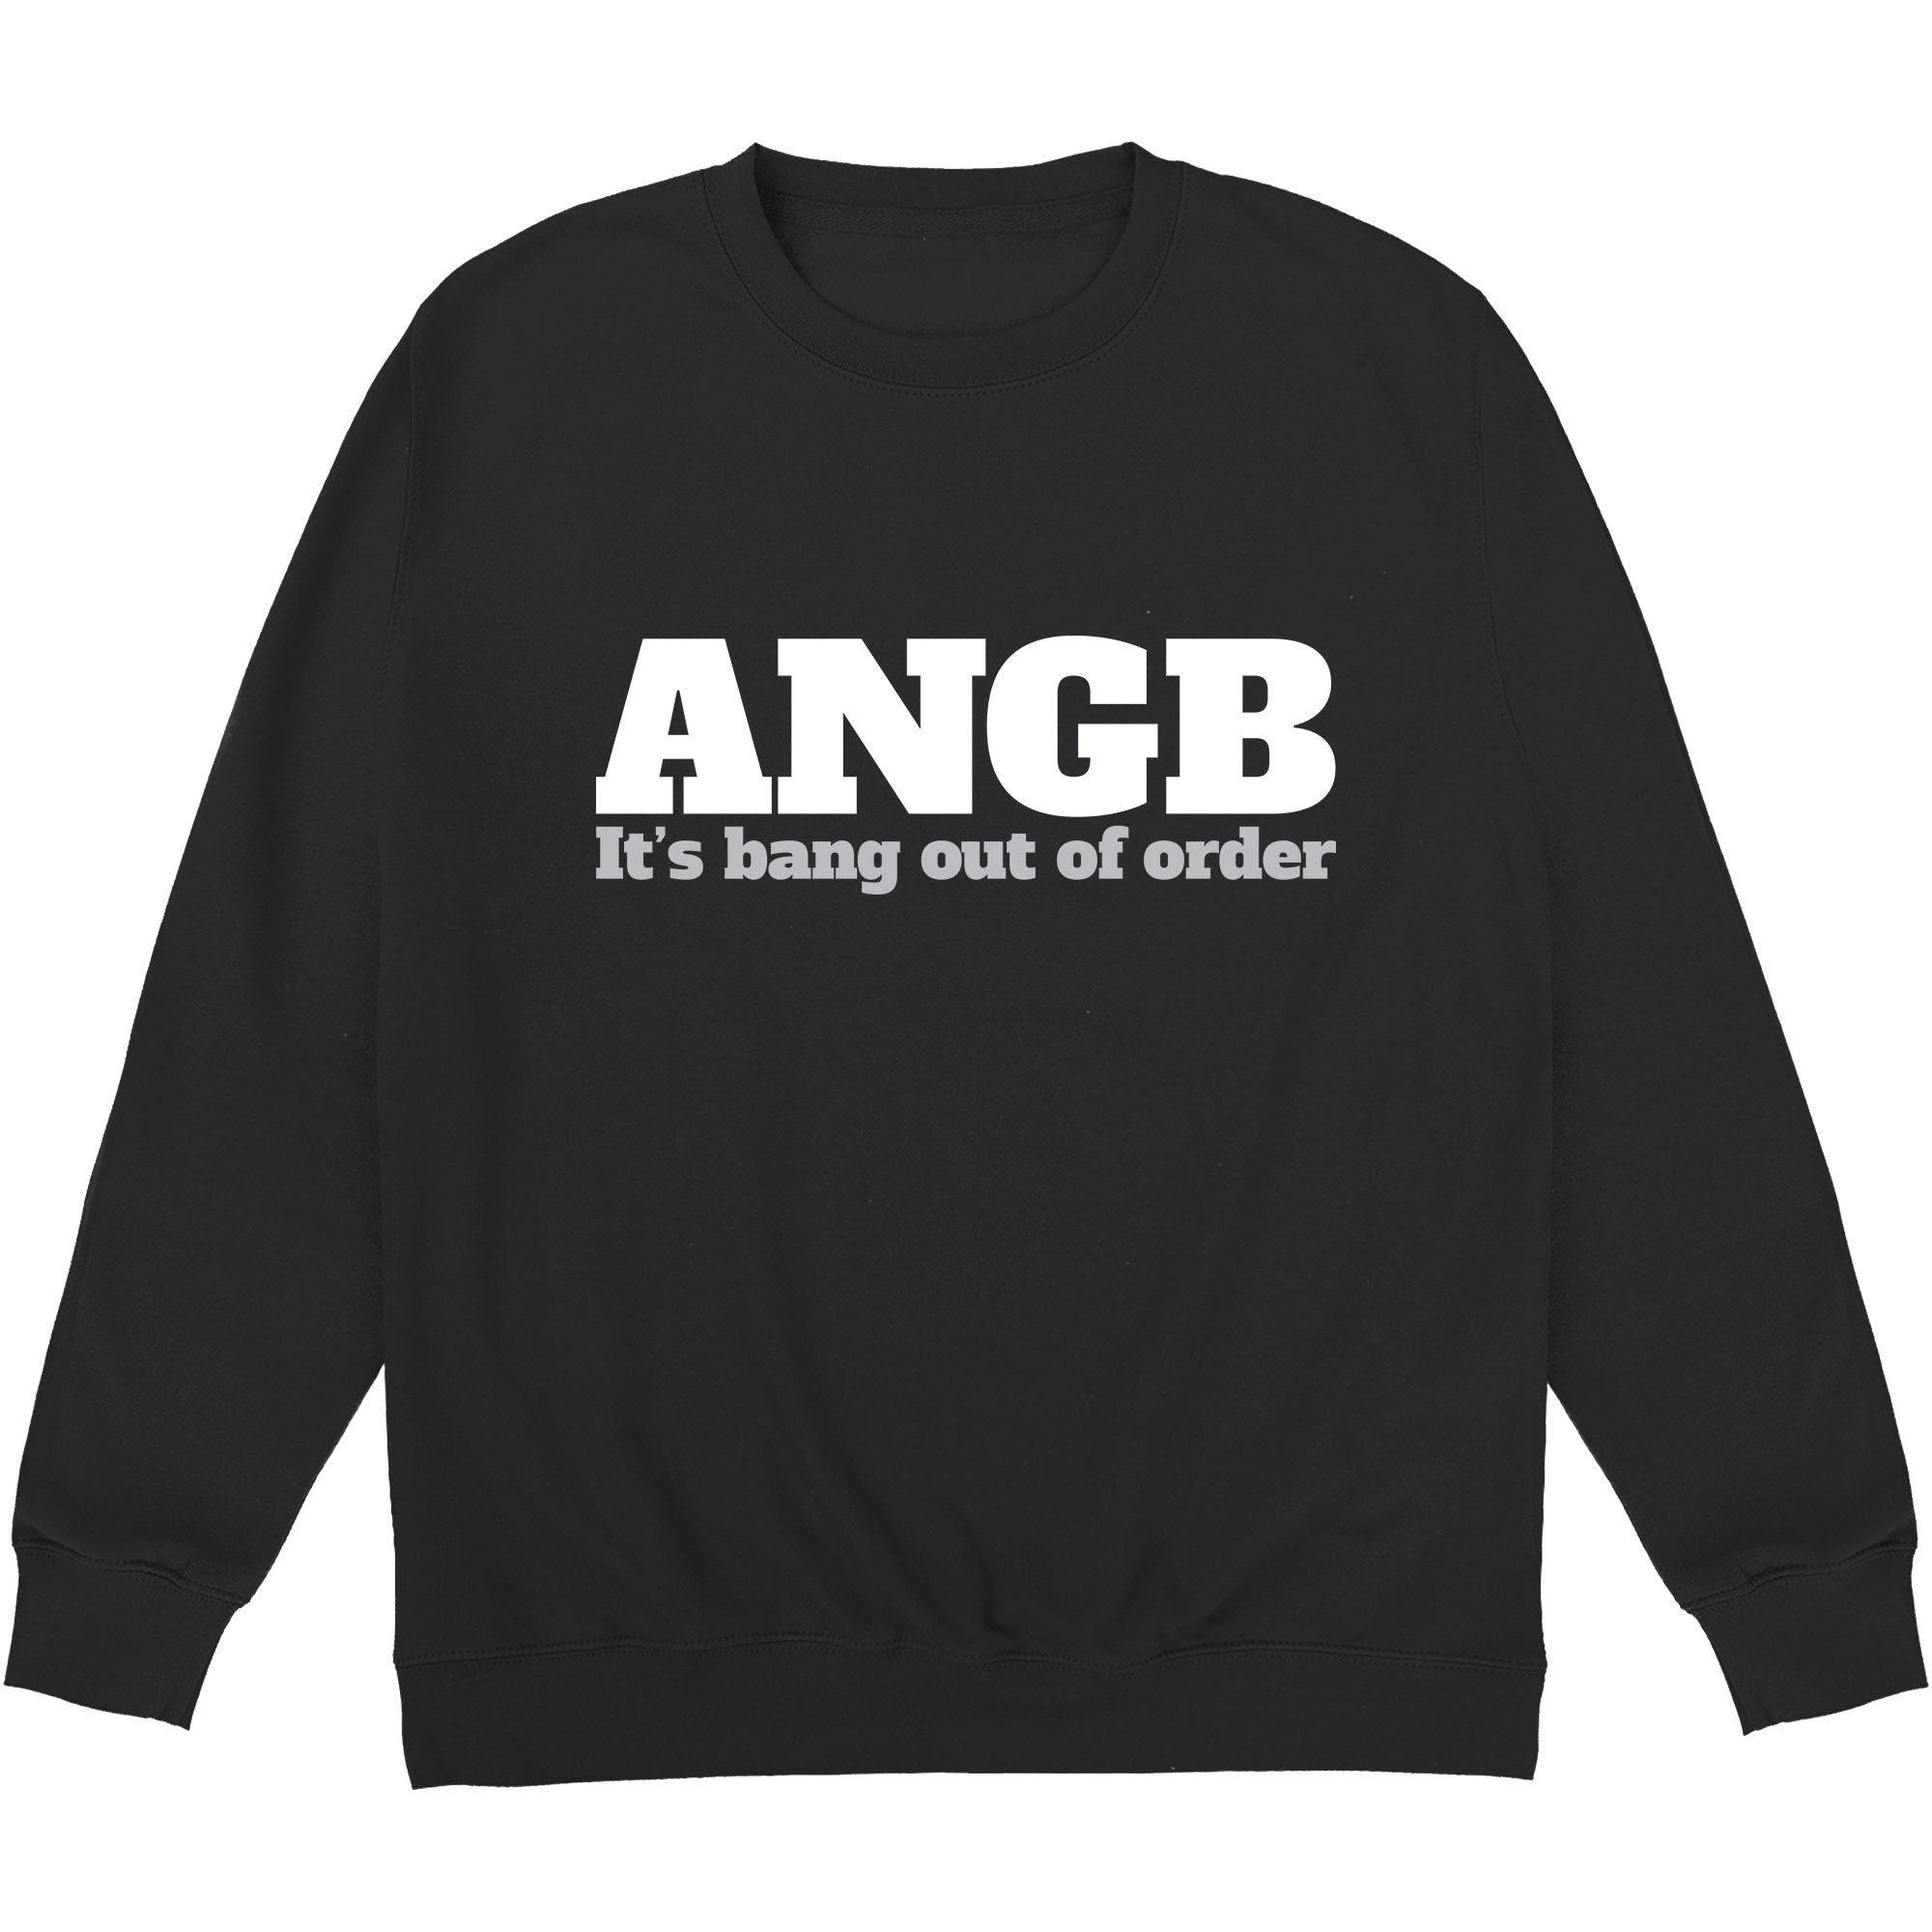 CHEAP ANGB Sweatshirt 24322675729 – Clothing Accessories